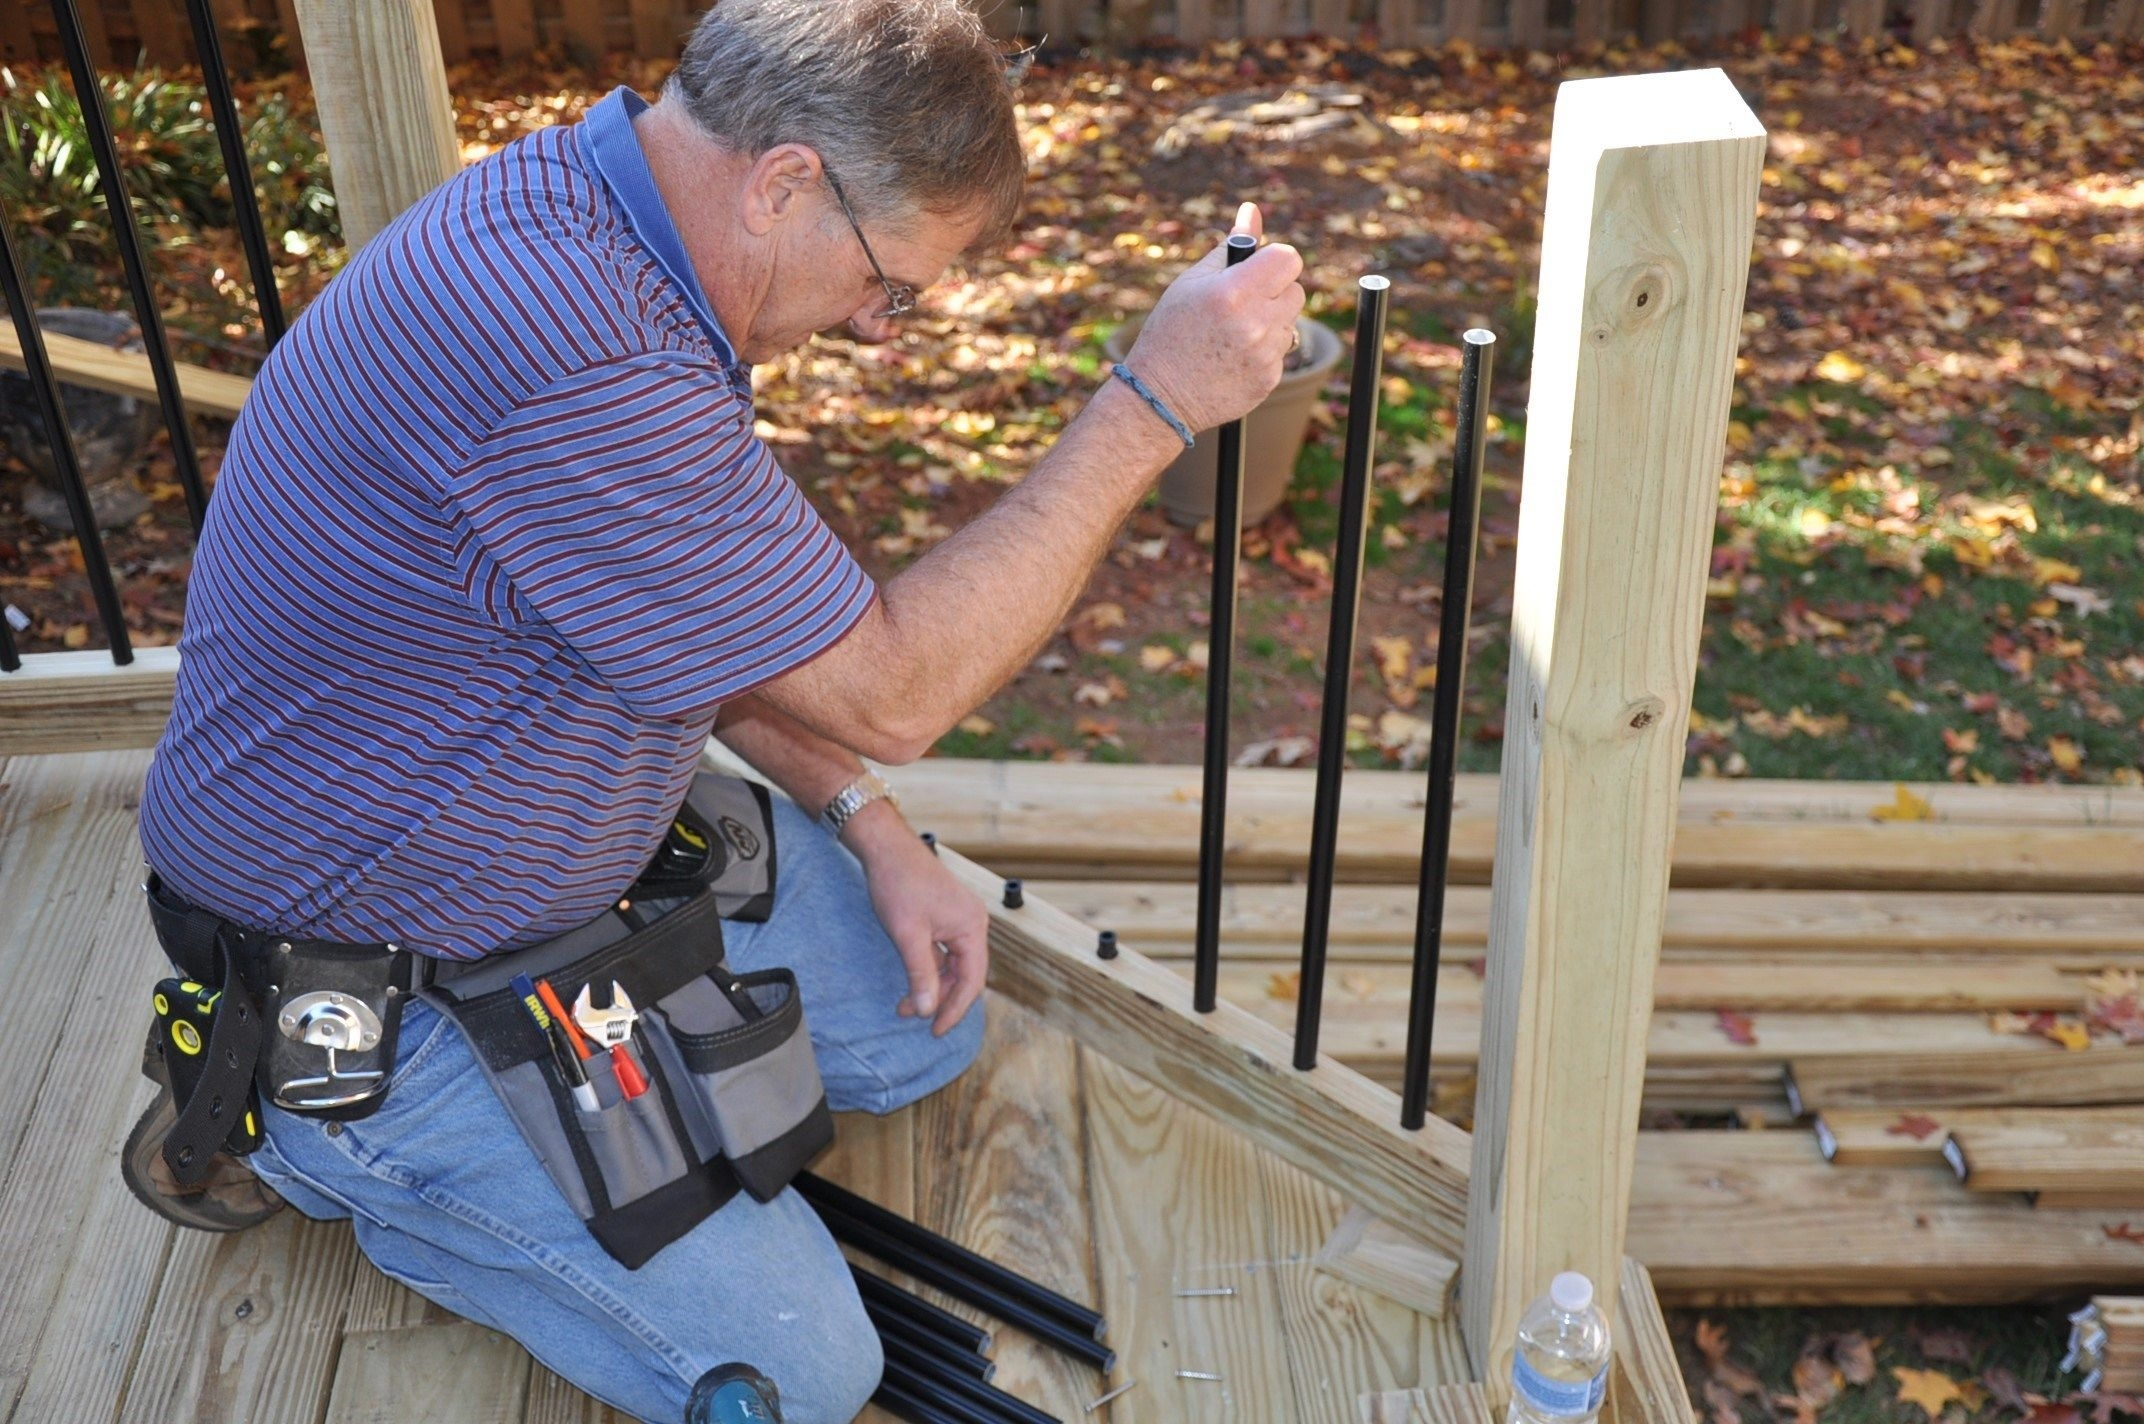 How To Install Deck Rail Balusters Decks Com | Installing Square Top Balusters